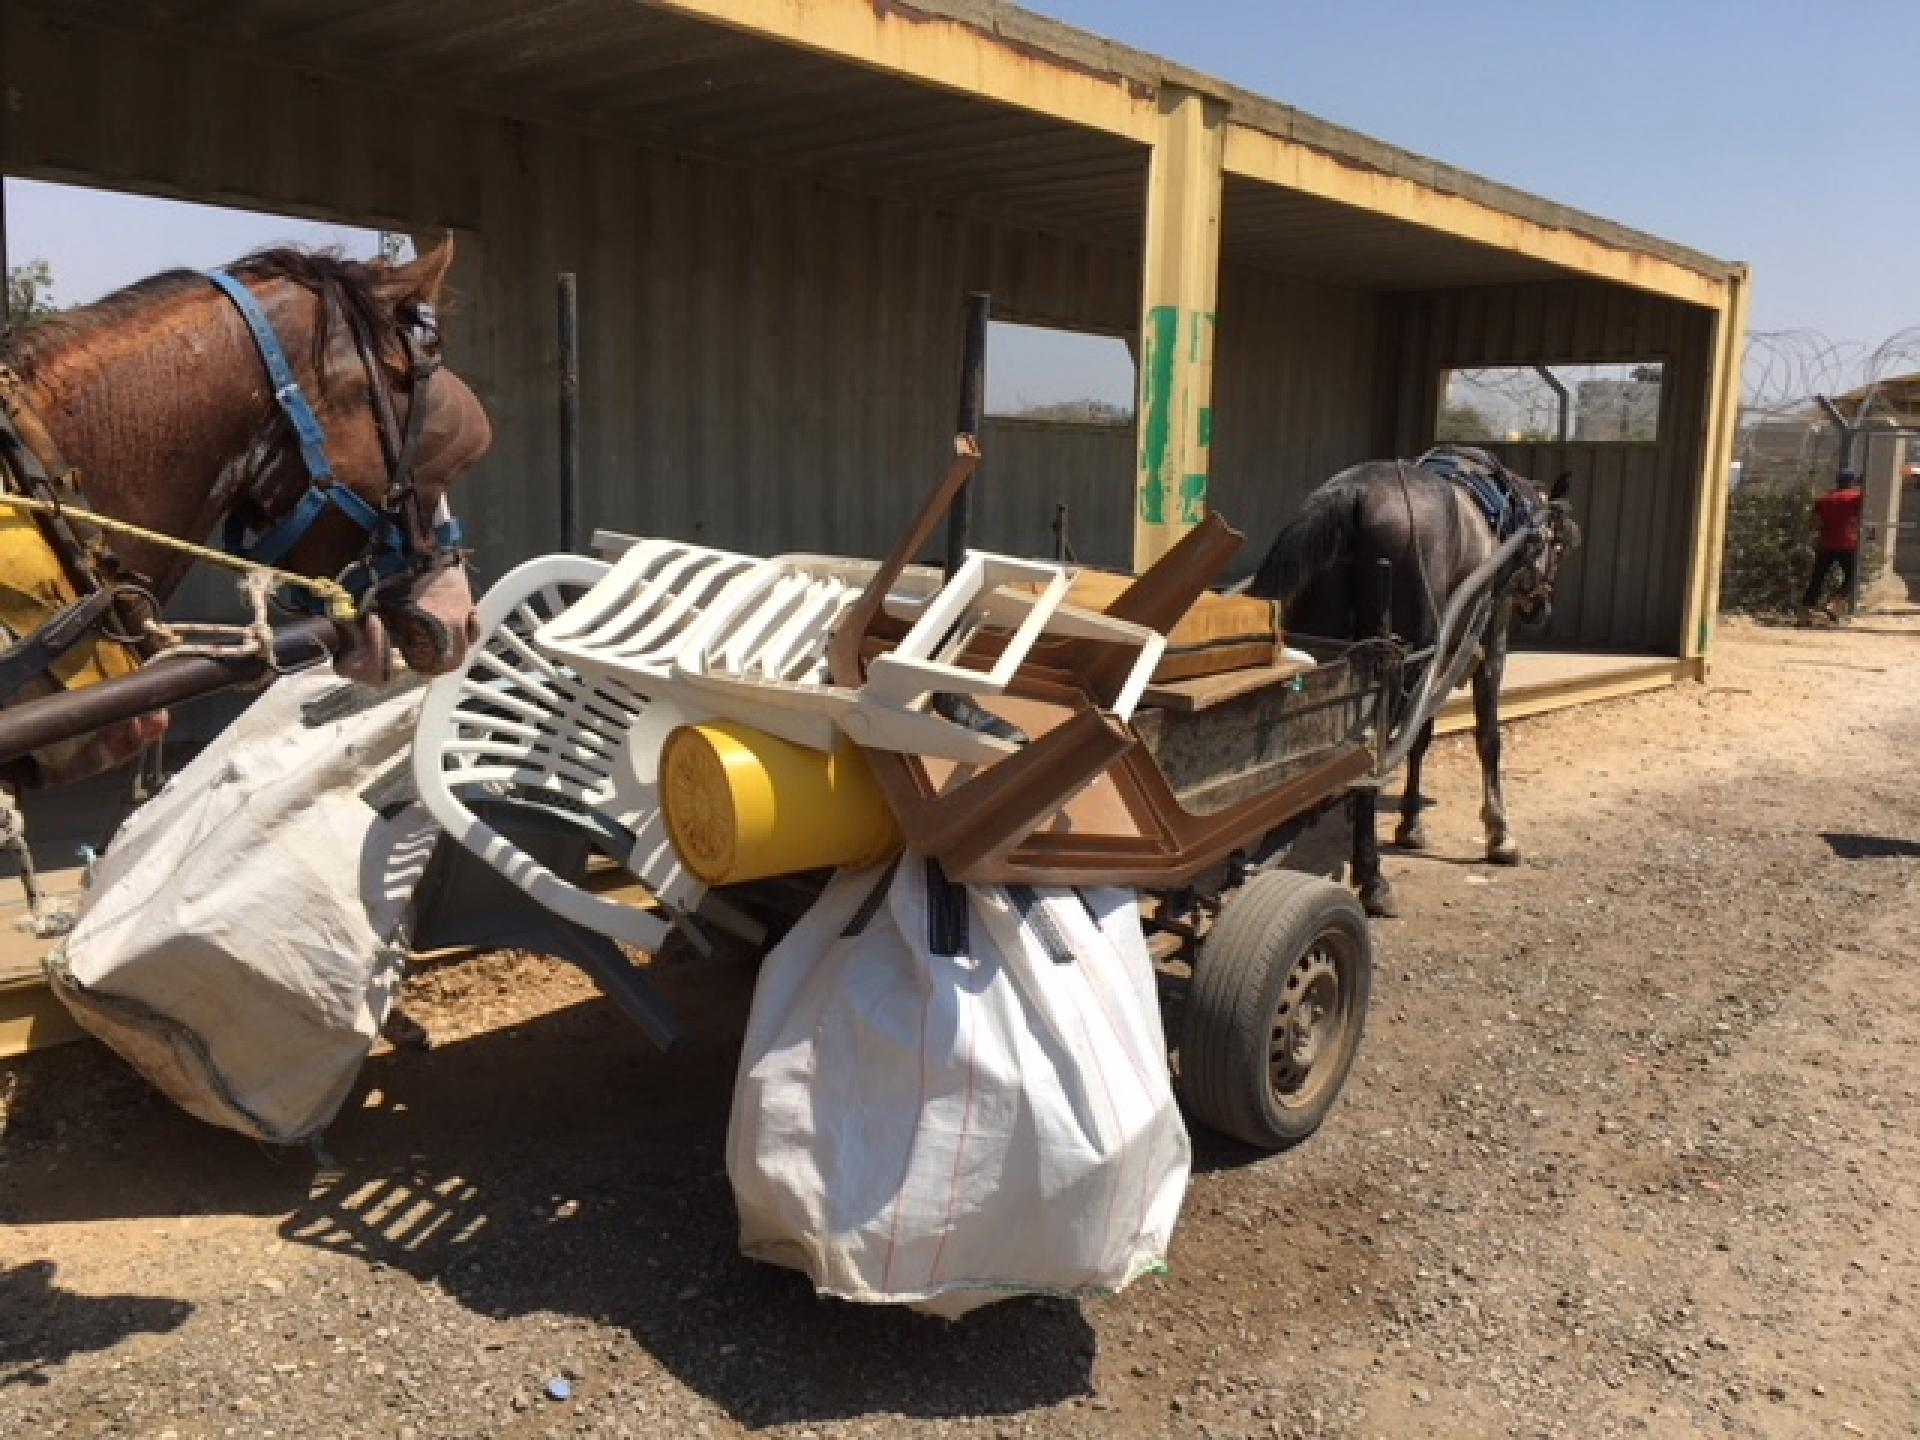 A loaded cart on the way to the checkpoint